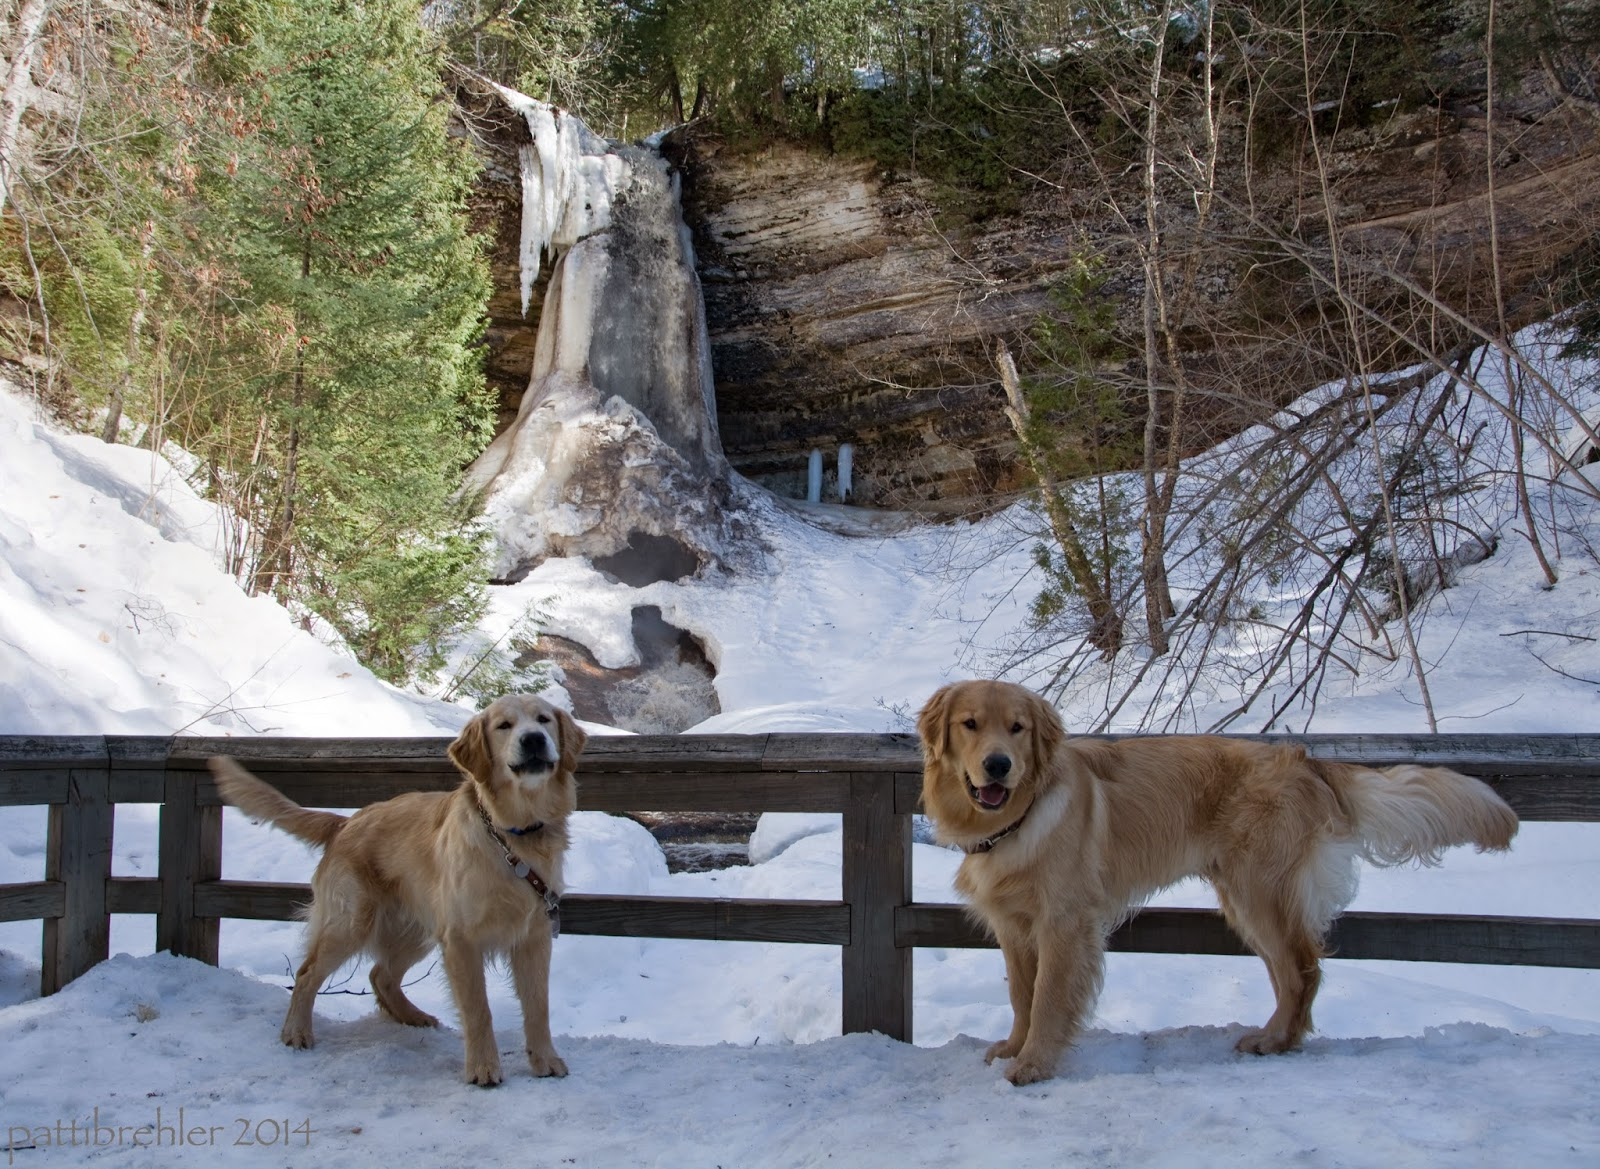 Two golden retrievers stand in front of a wooden fence, their leashes are tied to the fend. They are facing each other but are looking at the camera. There is snow all around and in the background is a tall partly frozen waterfall, coming down from a limestone cliff. There are some small fir trees to the left and bare limbed hardwood trees to the right.